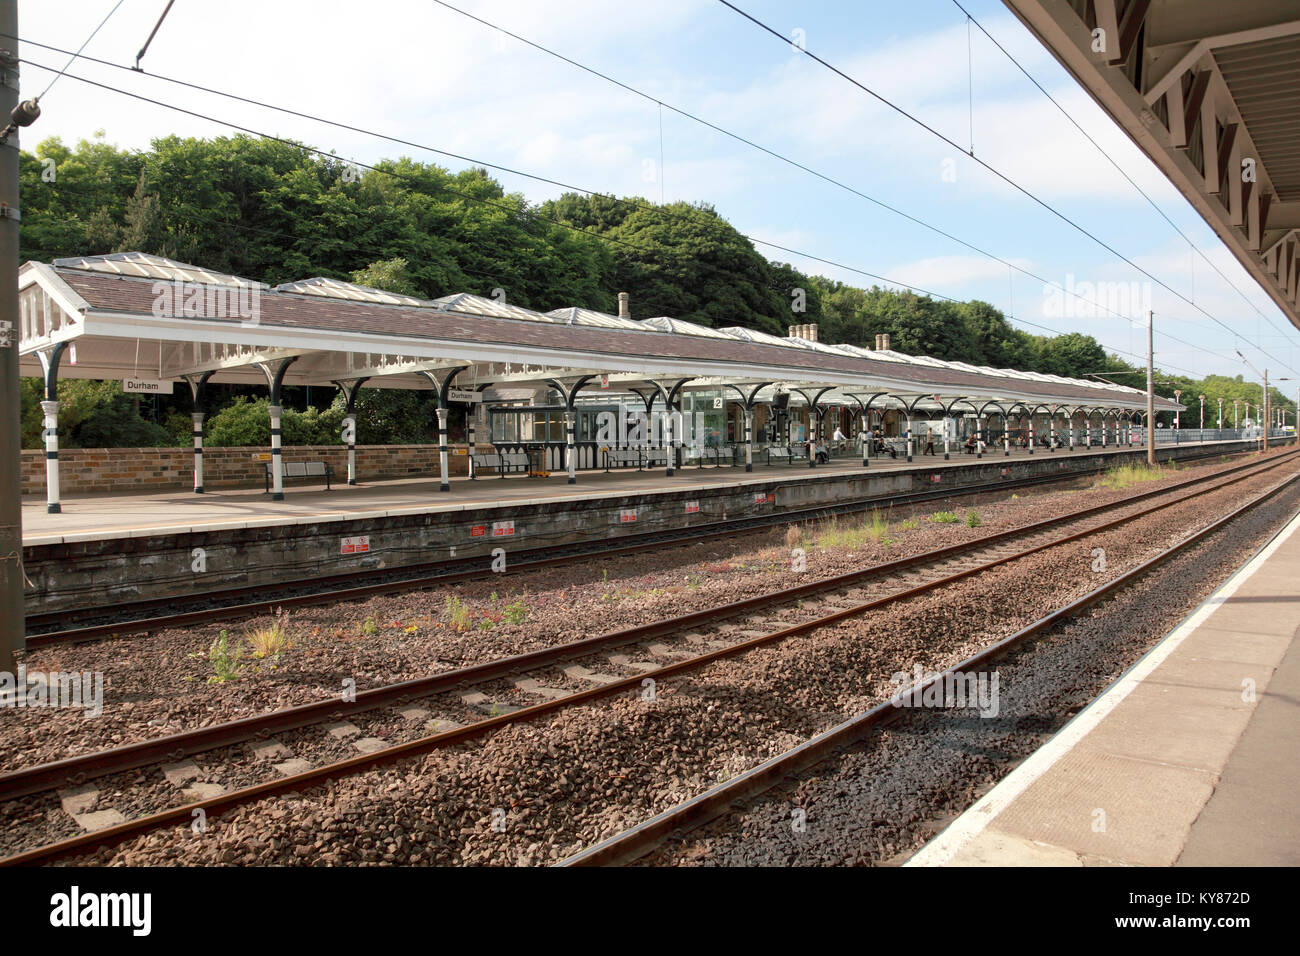 Durham railway station - Stock Image